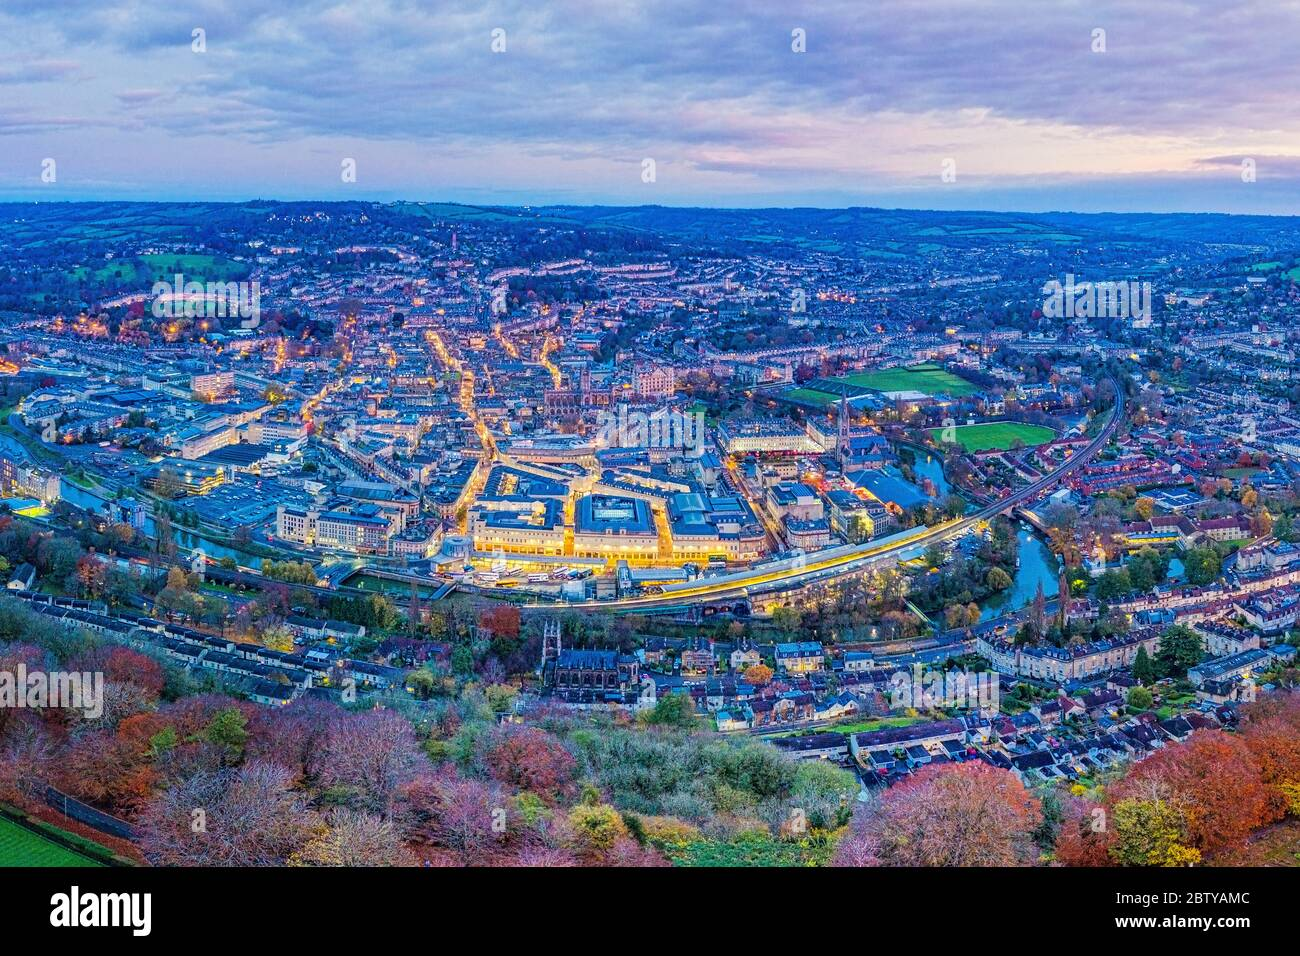 Aerial view by drone over the Georgian city of Bath, Somerset, England, United Kingdom, Europe Stock Photo